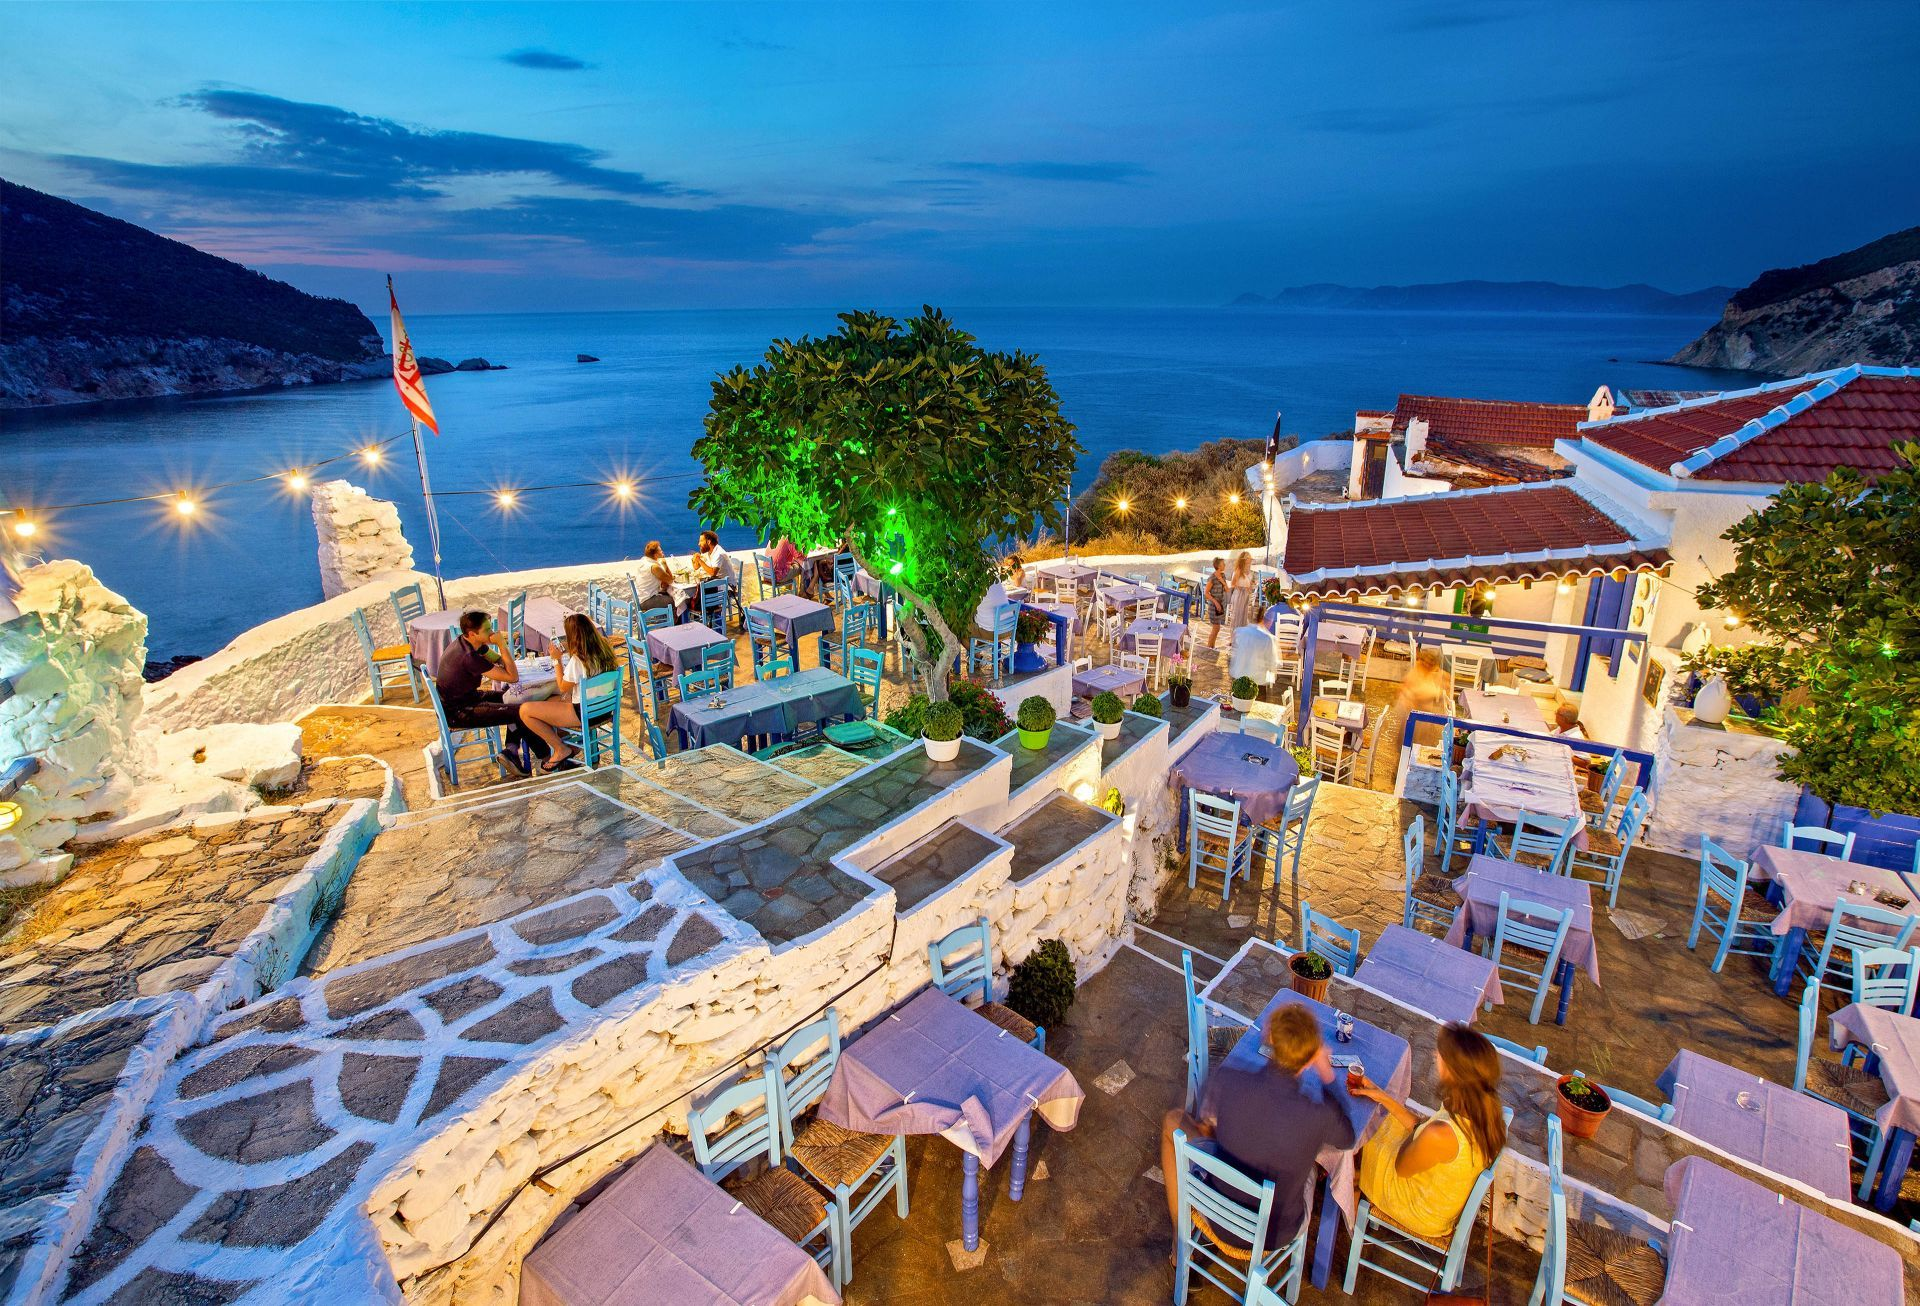 Places to eat and drink in Skopelos